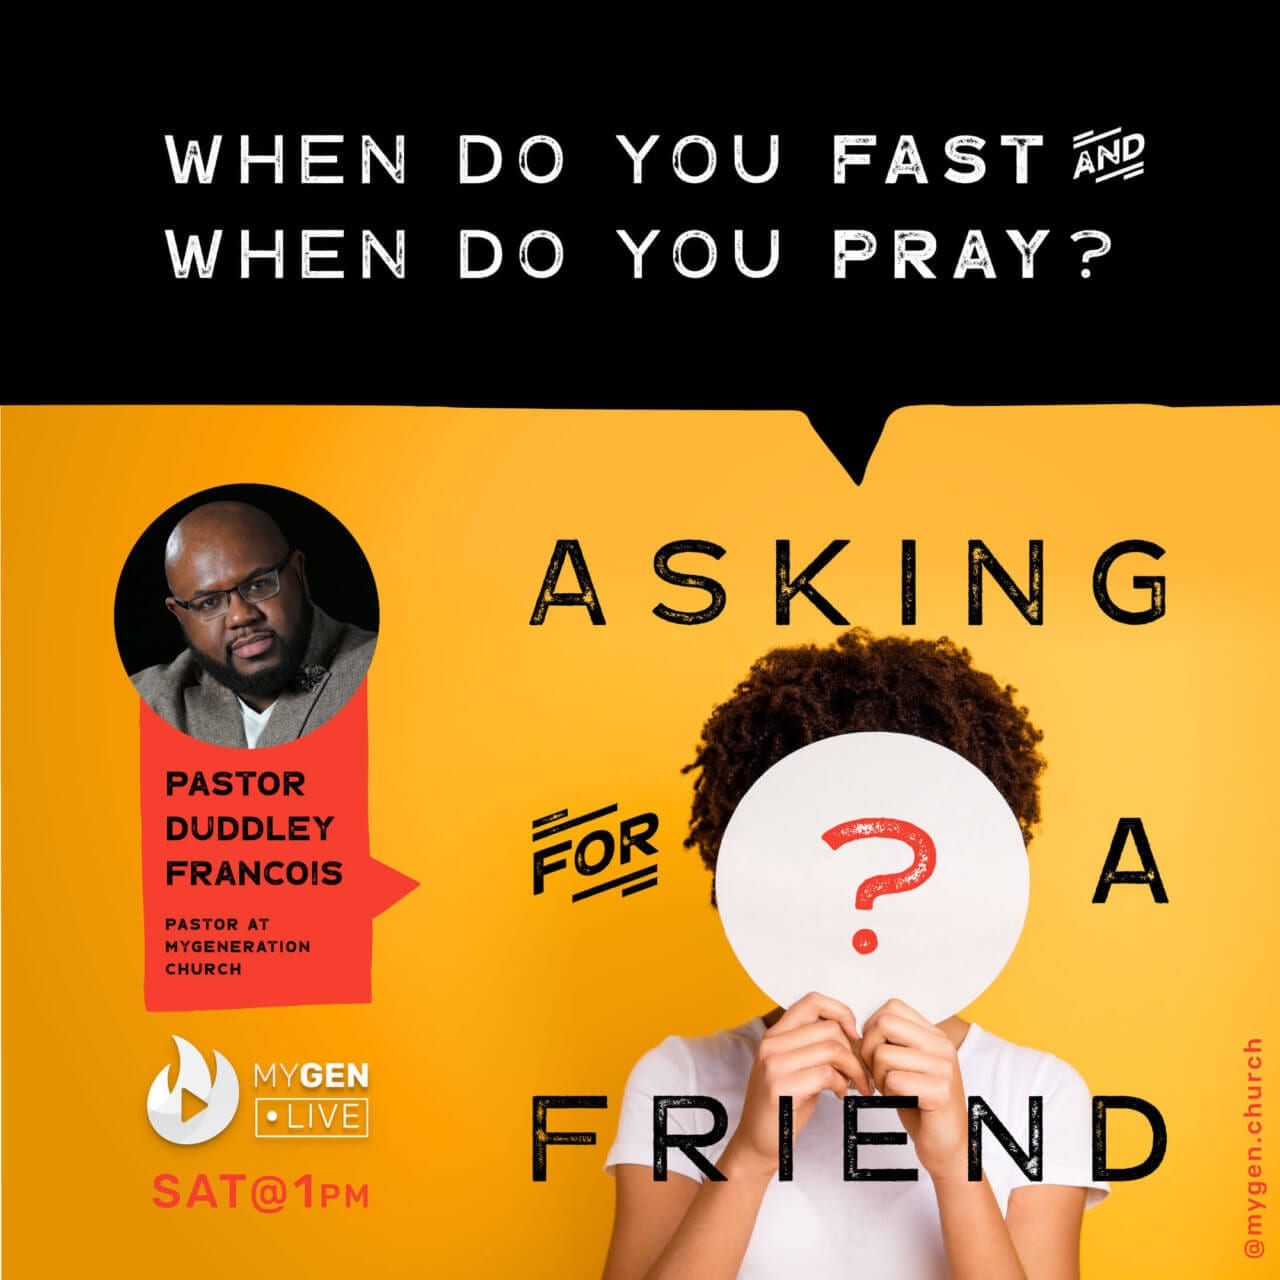 MyGen LIVE: When Do You Fast And When Do You Pray? Asking For A Friend.